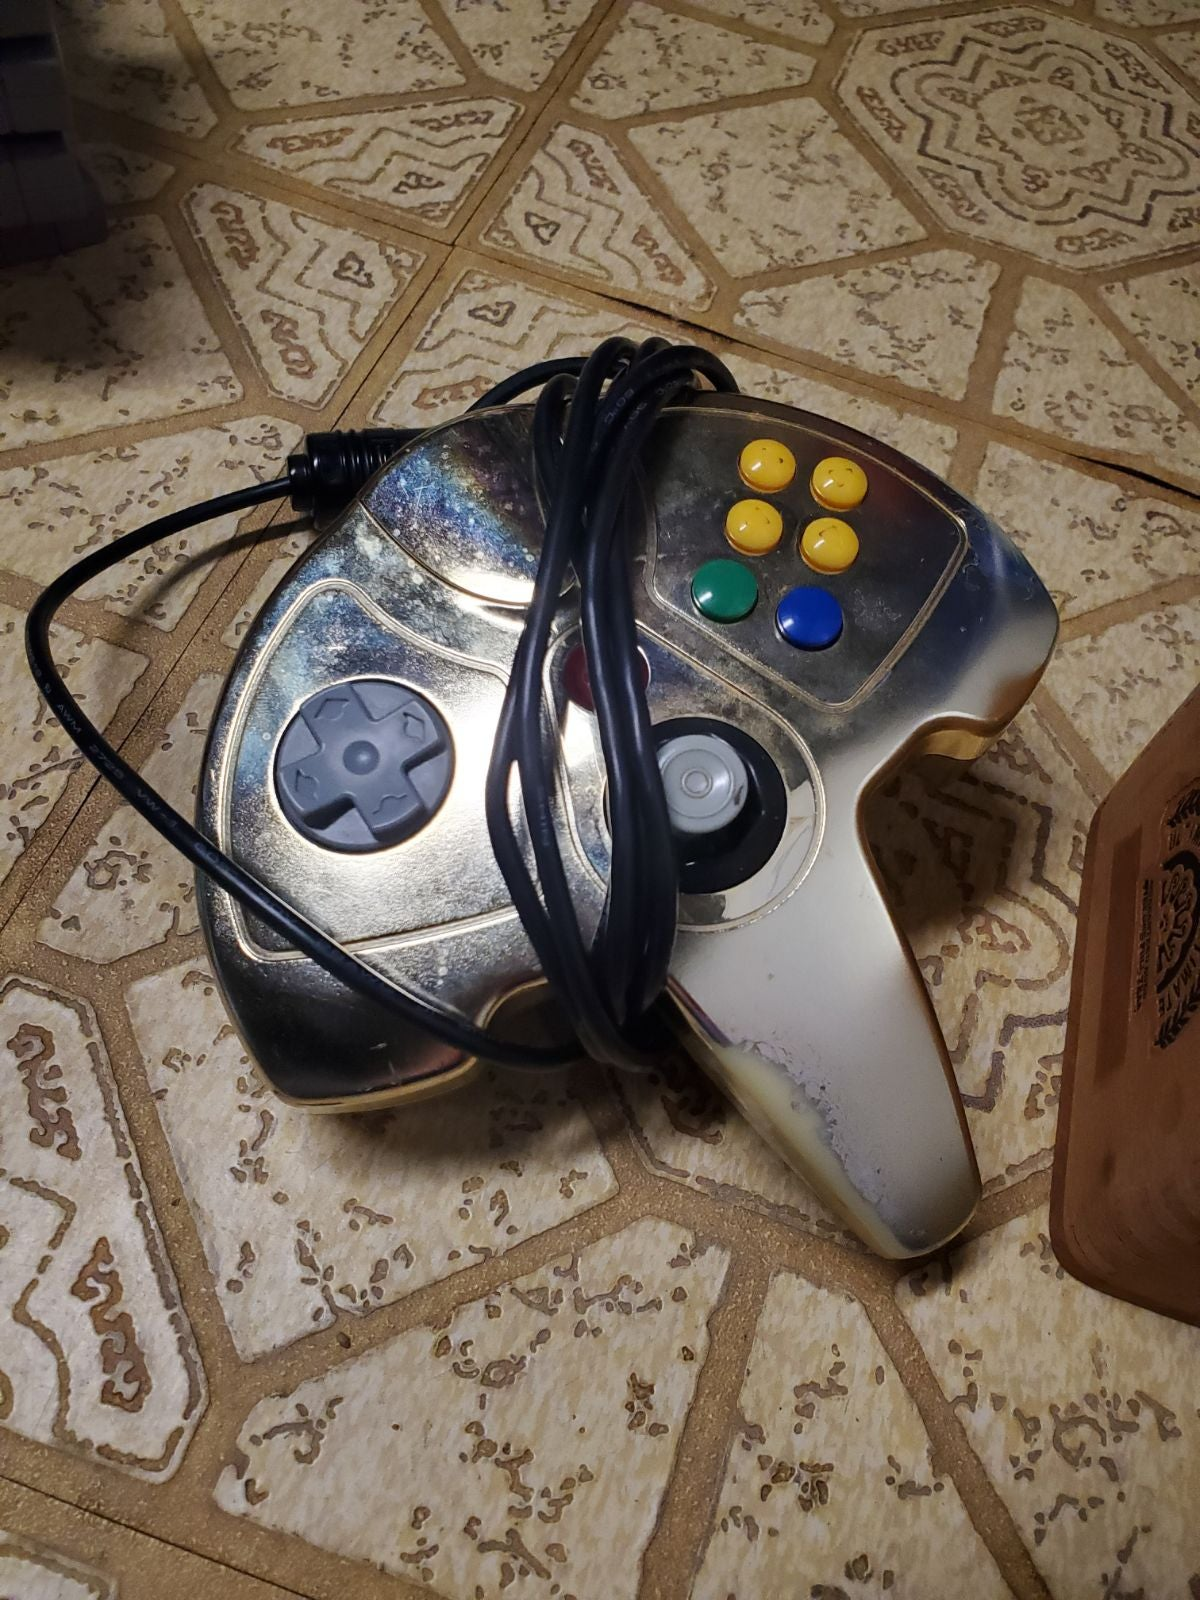 Gold n64 controller